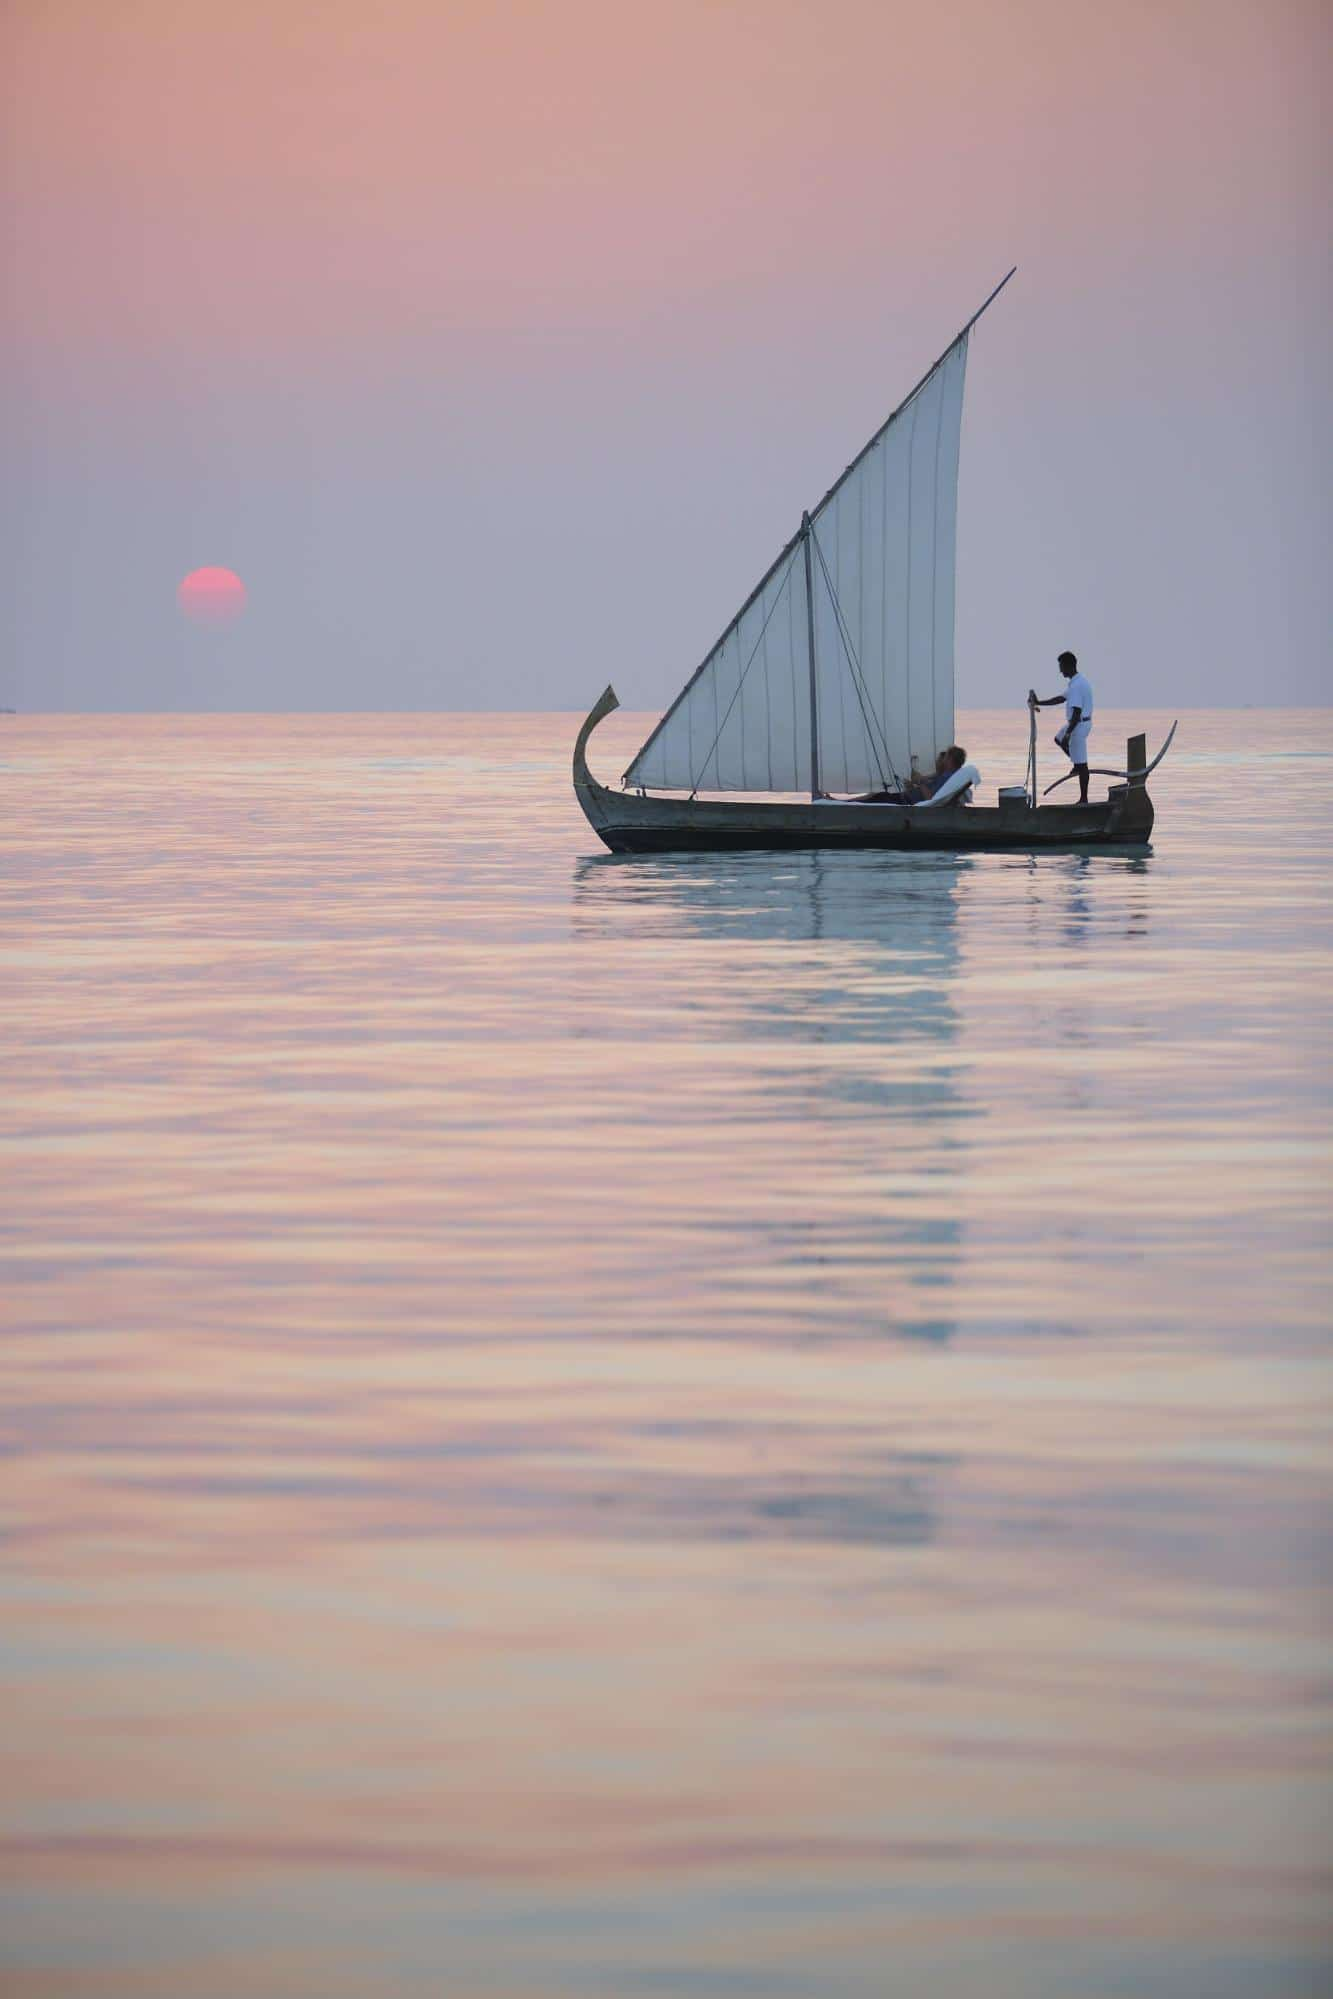 Sunset sailing - Courtesy of Gili Lankanfushi